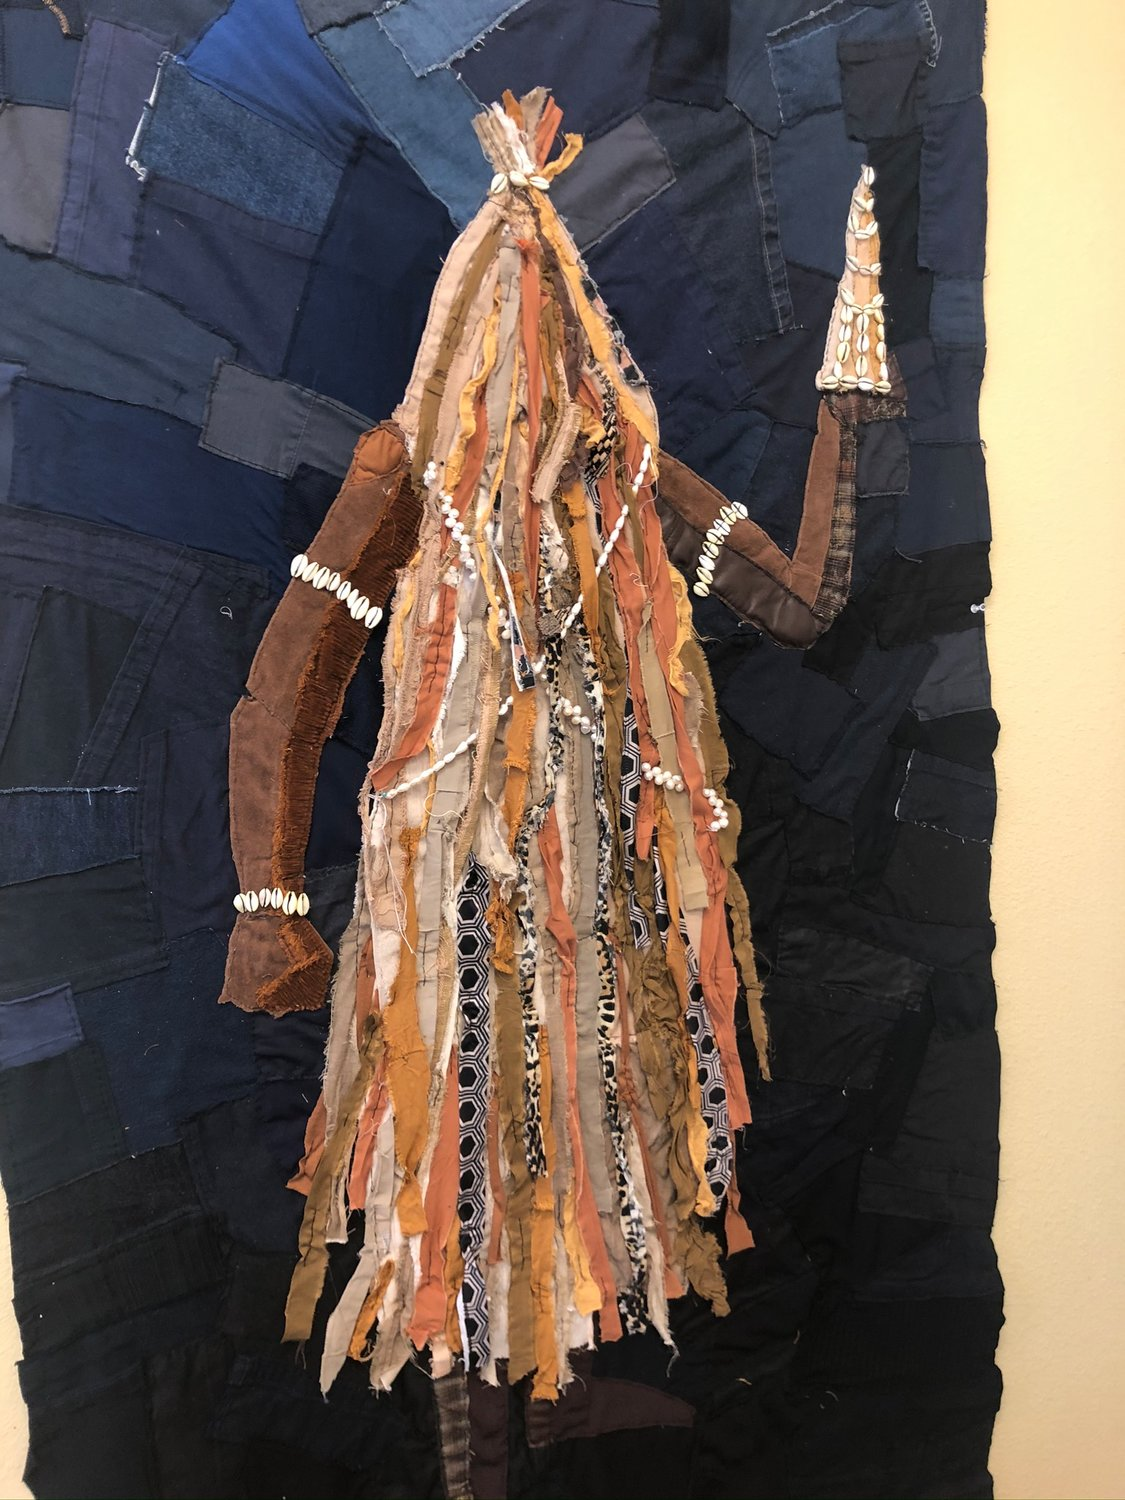 A textile creation collaboration with Galera and his partner Luis Filipe Feltrin depicting Obaluaê, an Orixá god of disease and healing.